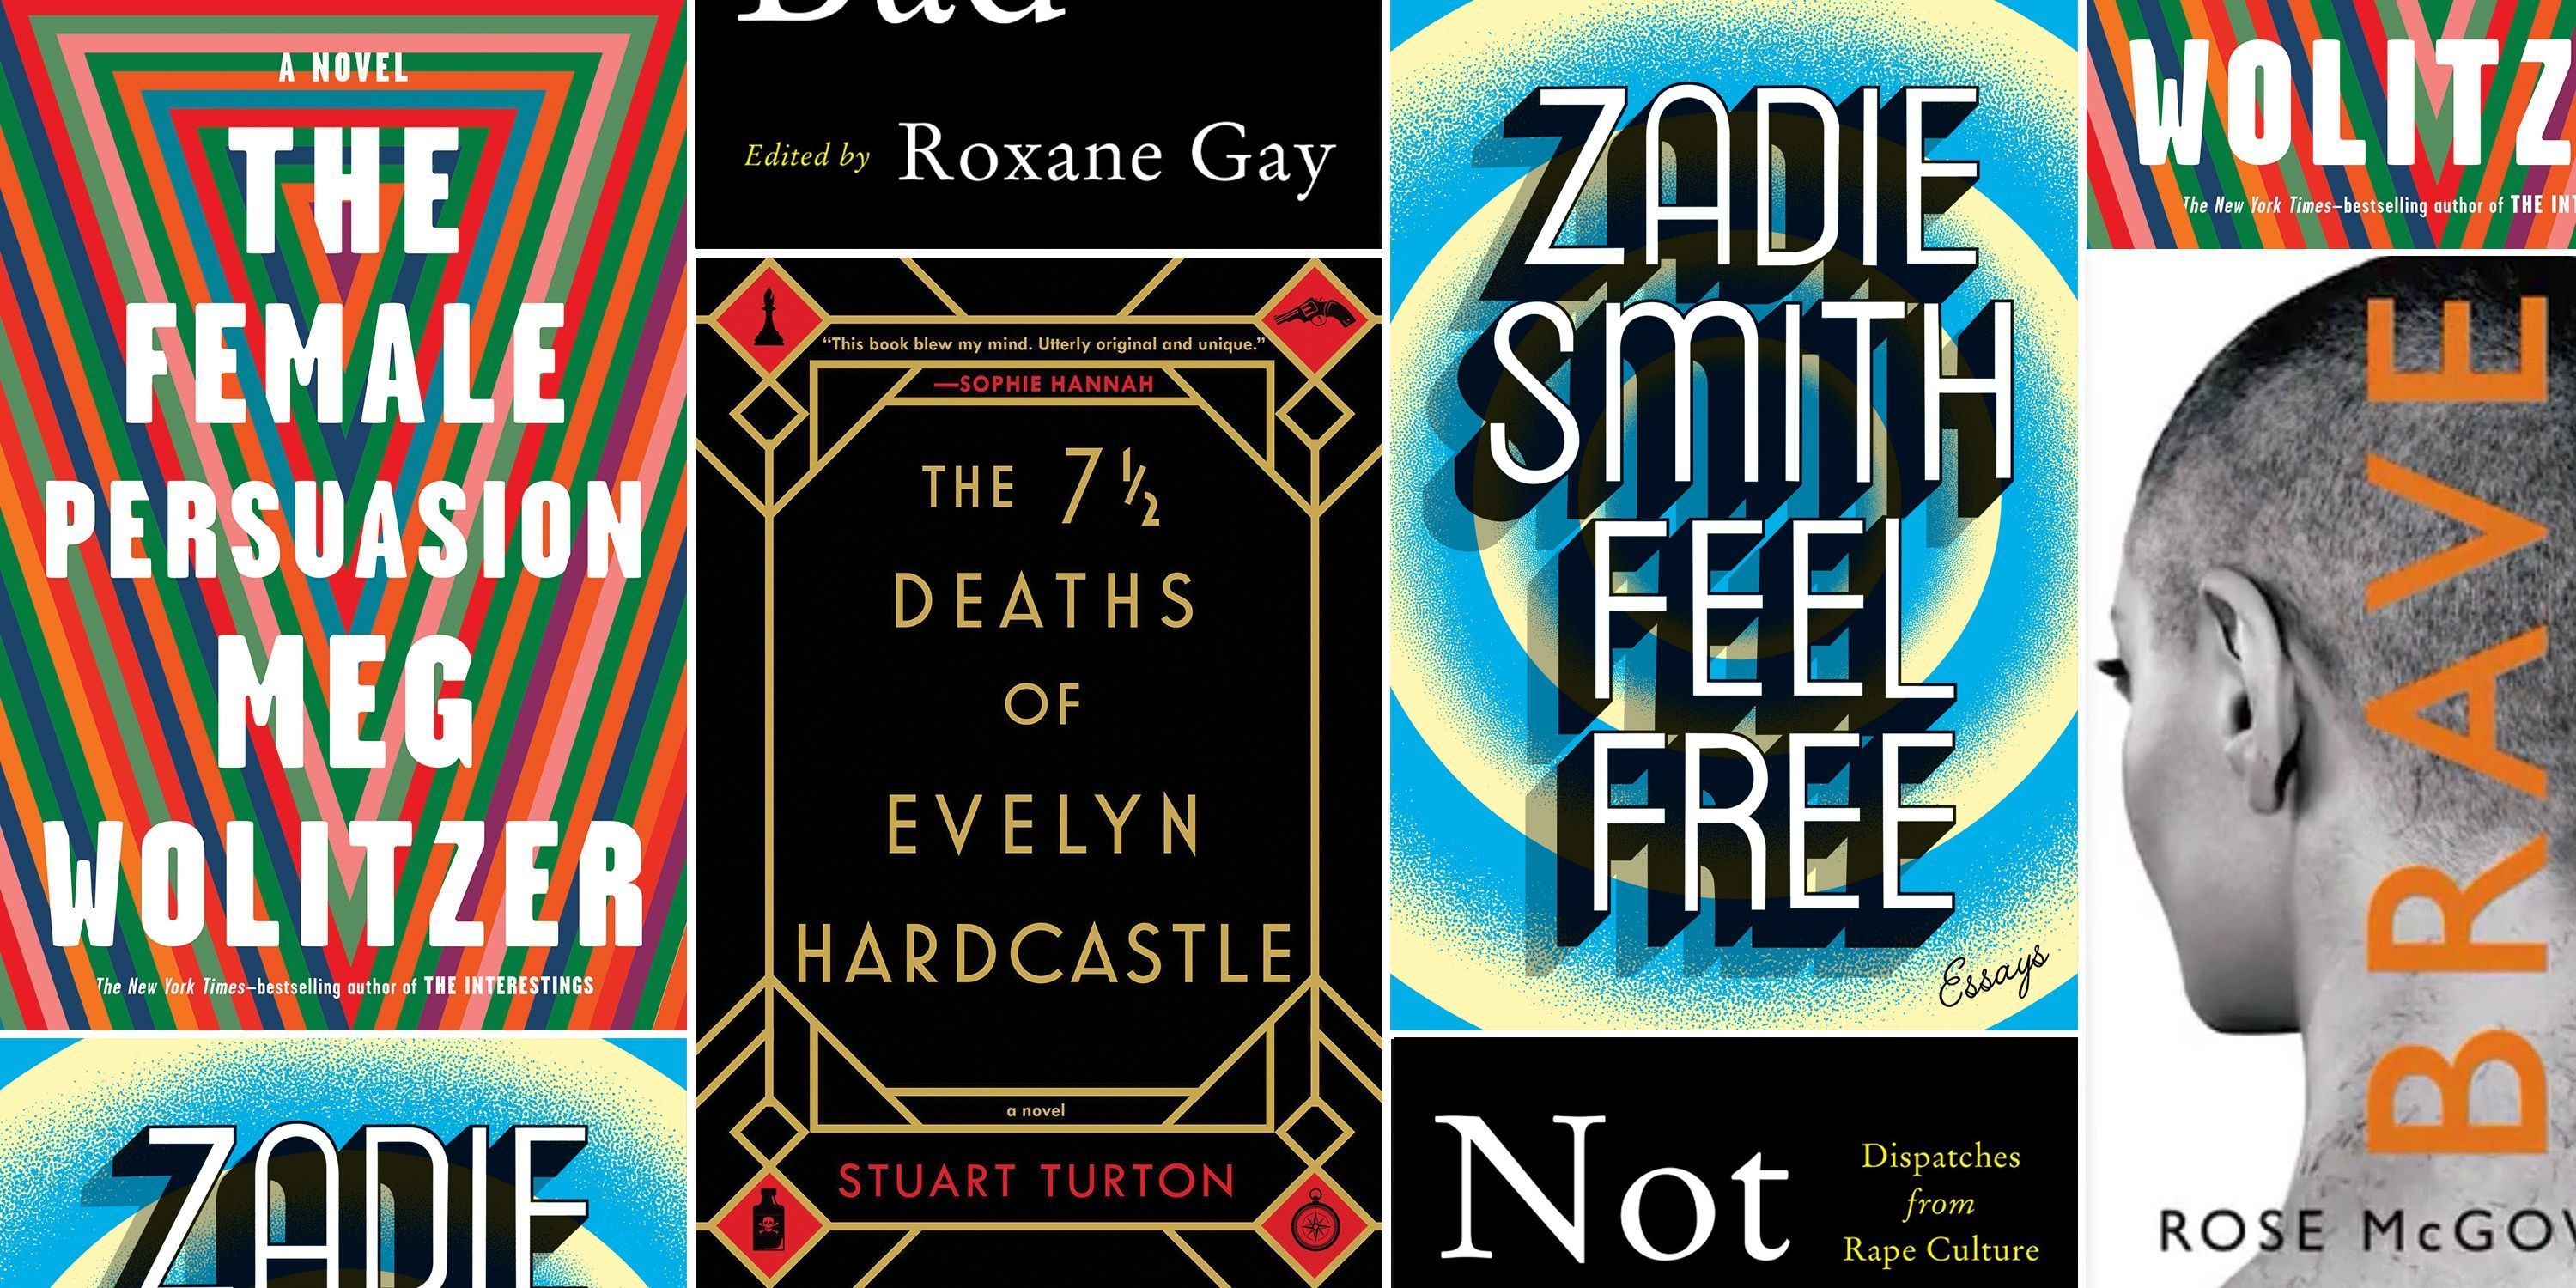 10 New Books to Add to Your Reading List in 2018